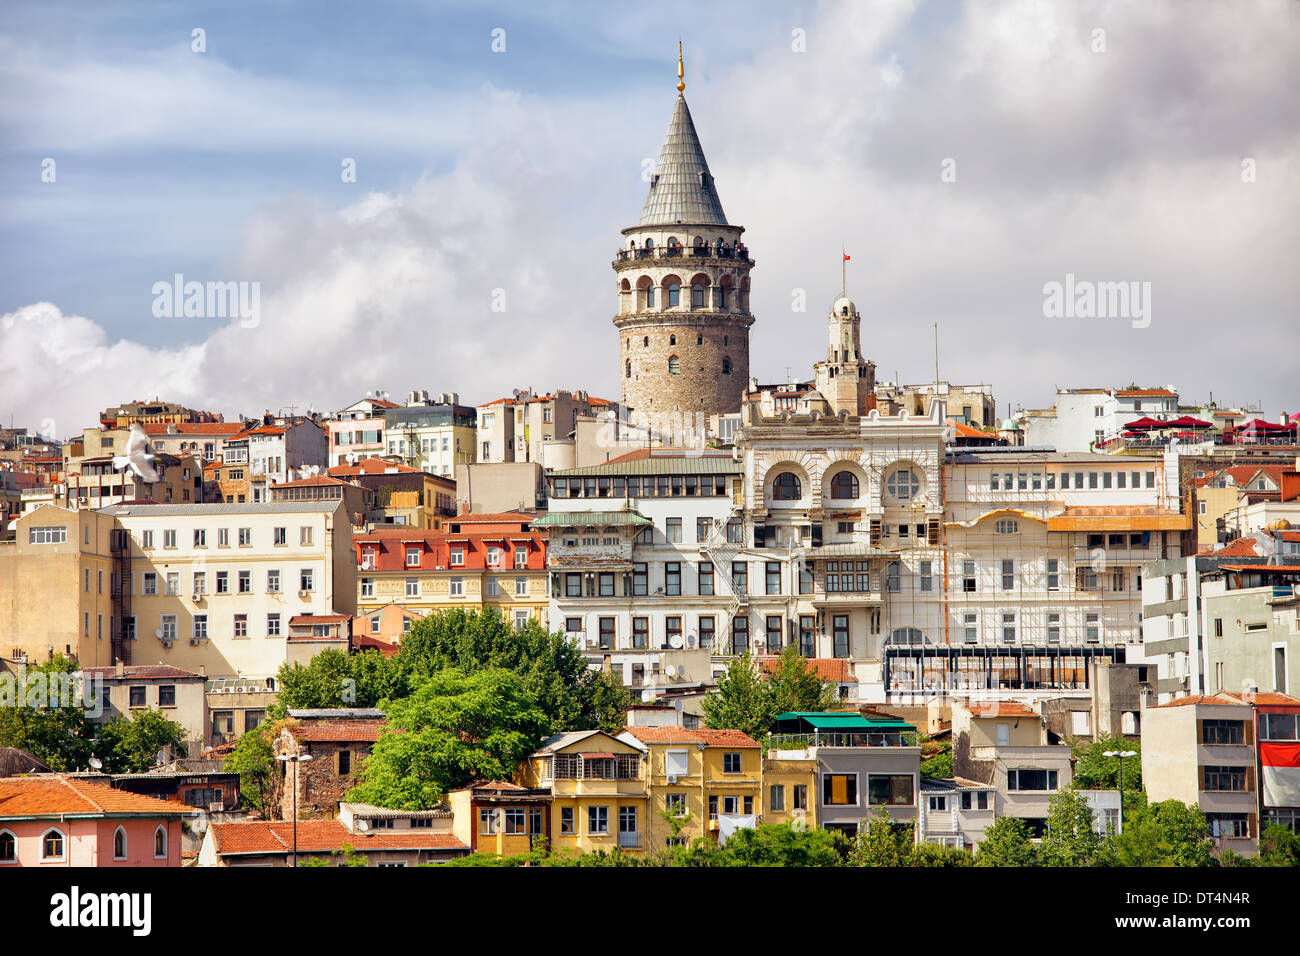 Istanbul cityscape in Turkey with Galata Tower, 14th-century city landmark in the middle. - Stock Image